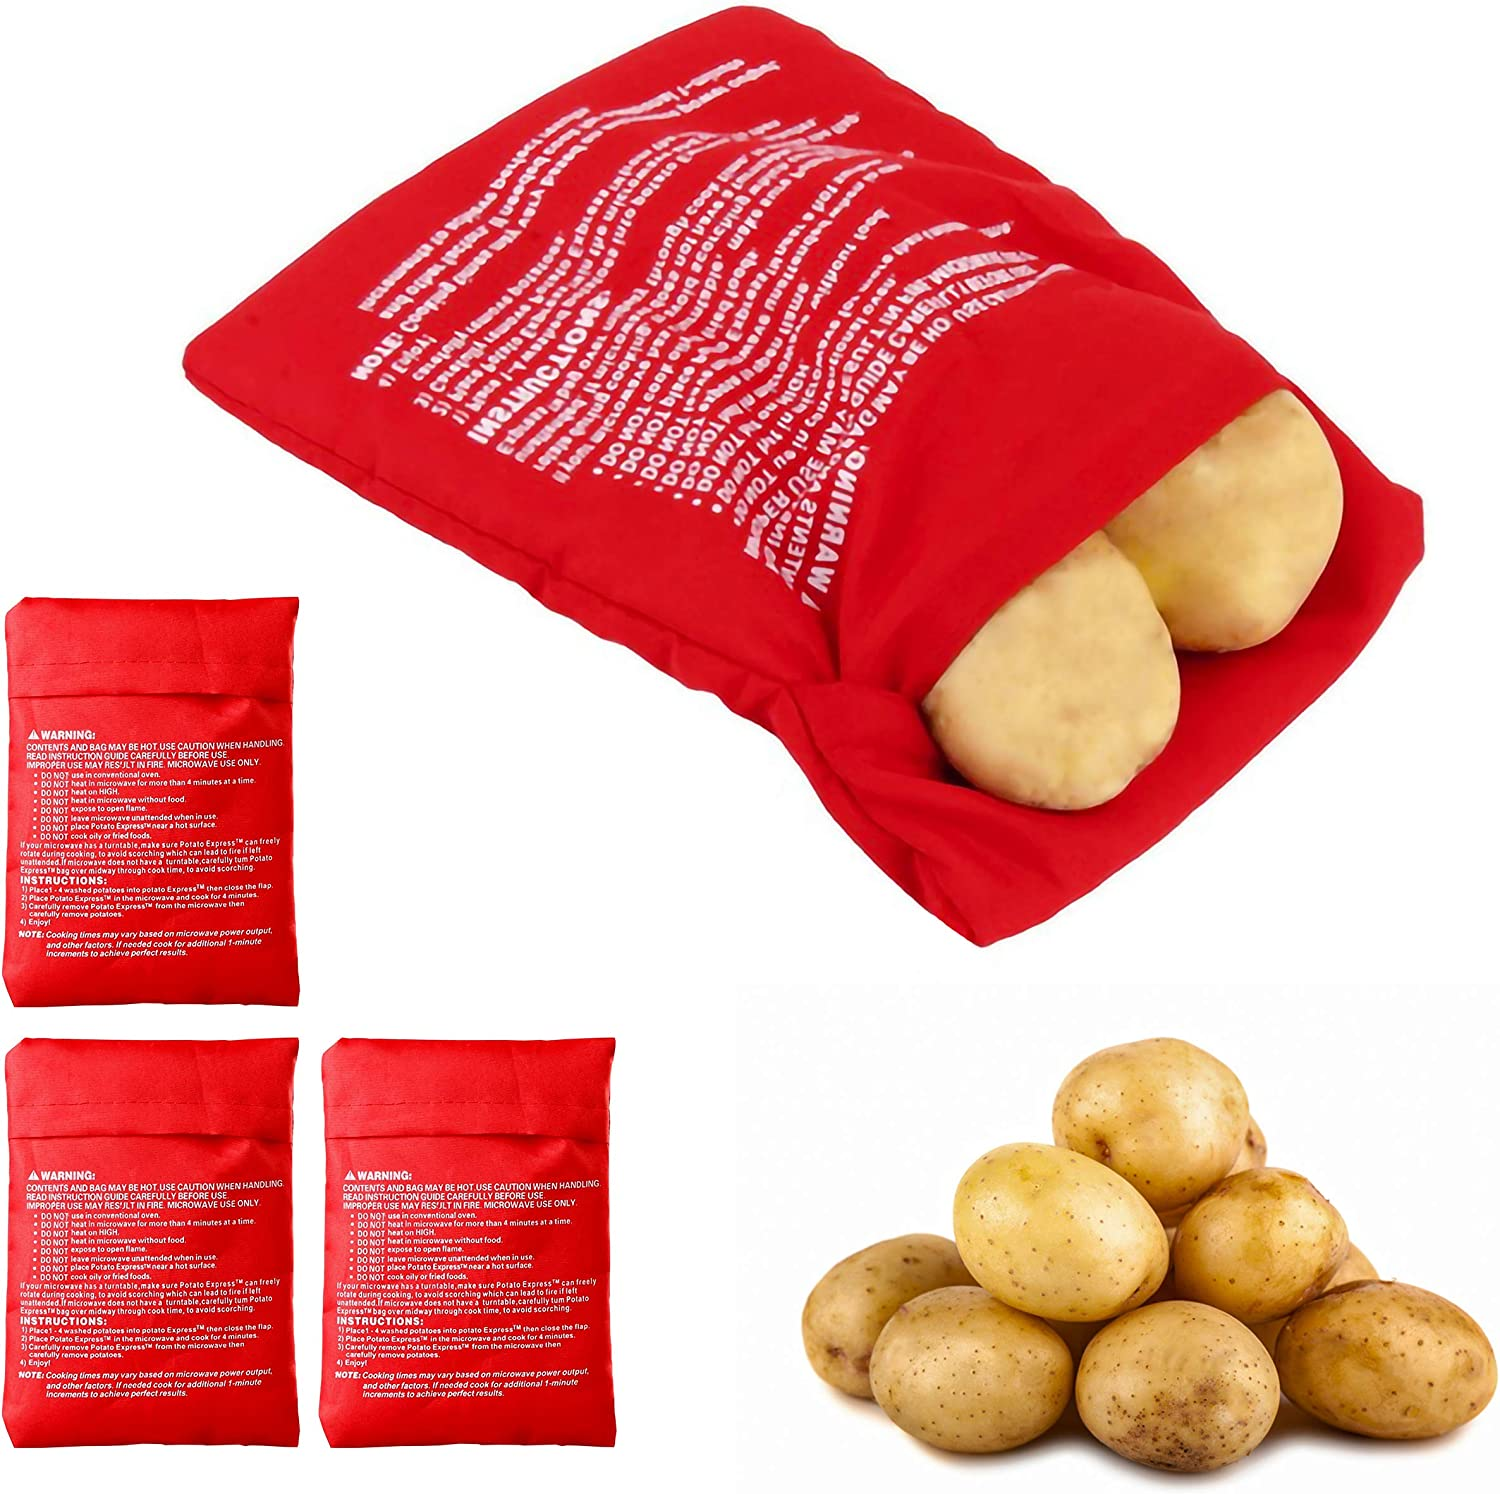 Microwave Potato Cooker Bag, Nice Size and Easily Fits 4 Potatoes, Just 4 Minutes Get Delicious Potato